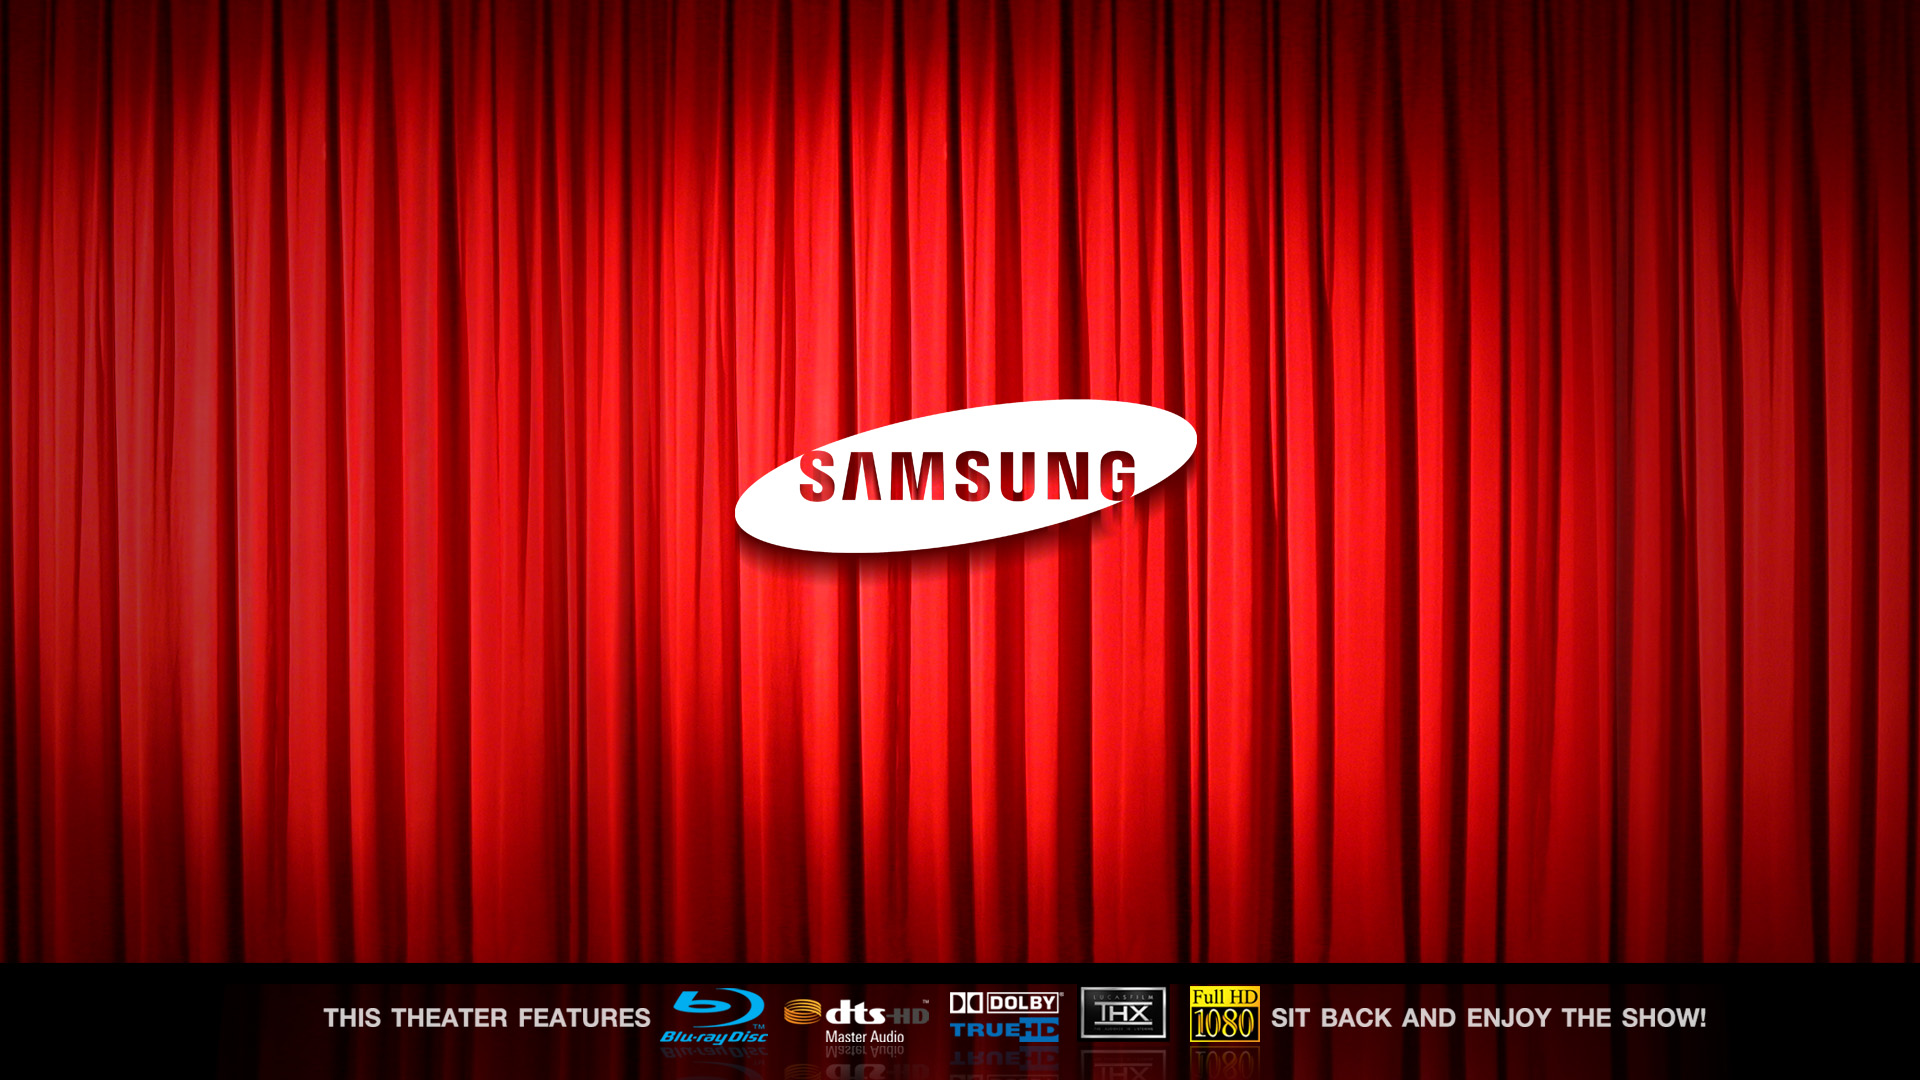 Samsung Class Led 1080p 120hz Smart Hdtv Hd Wallpaper